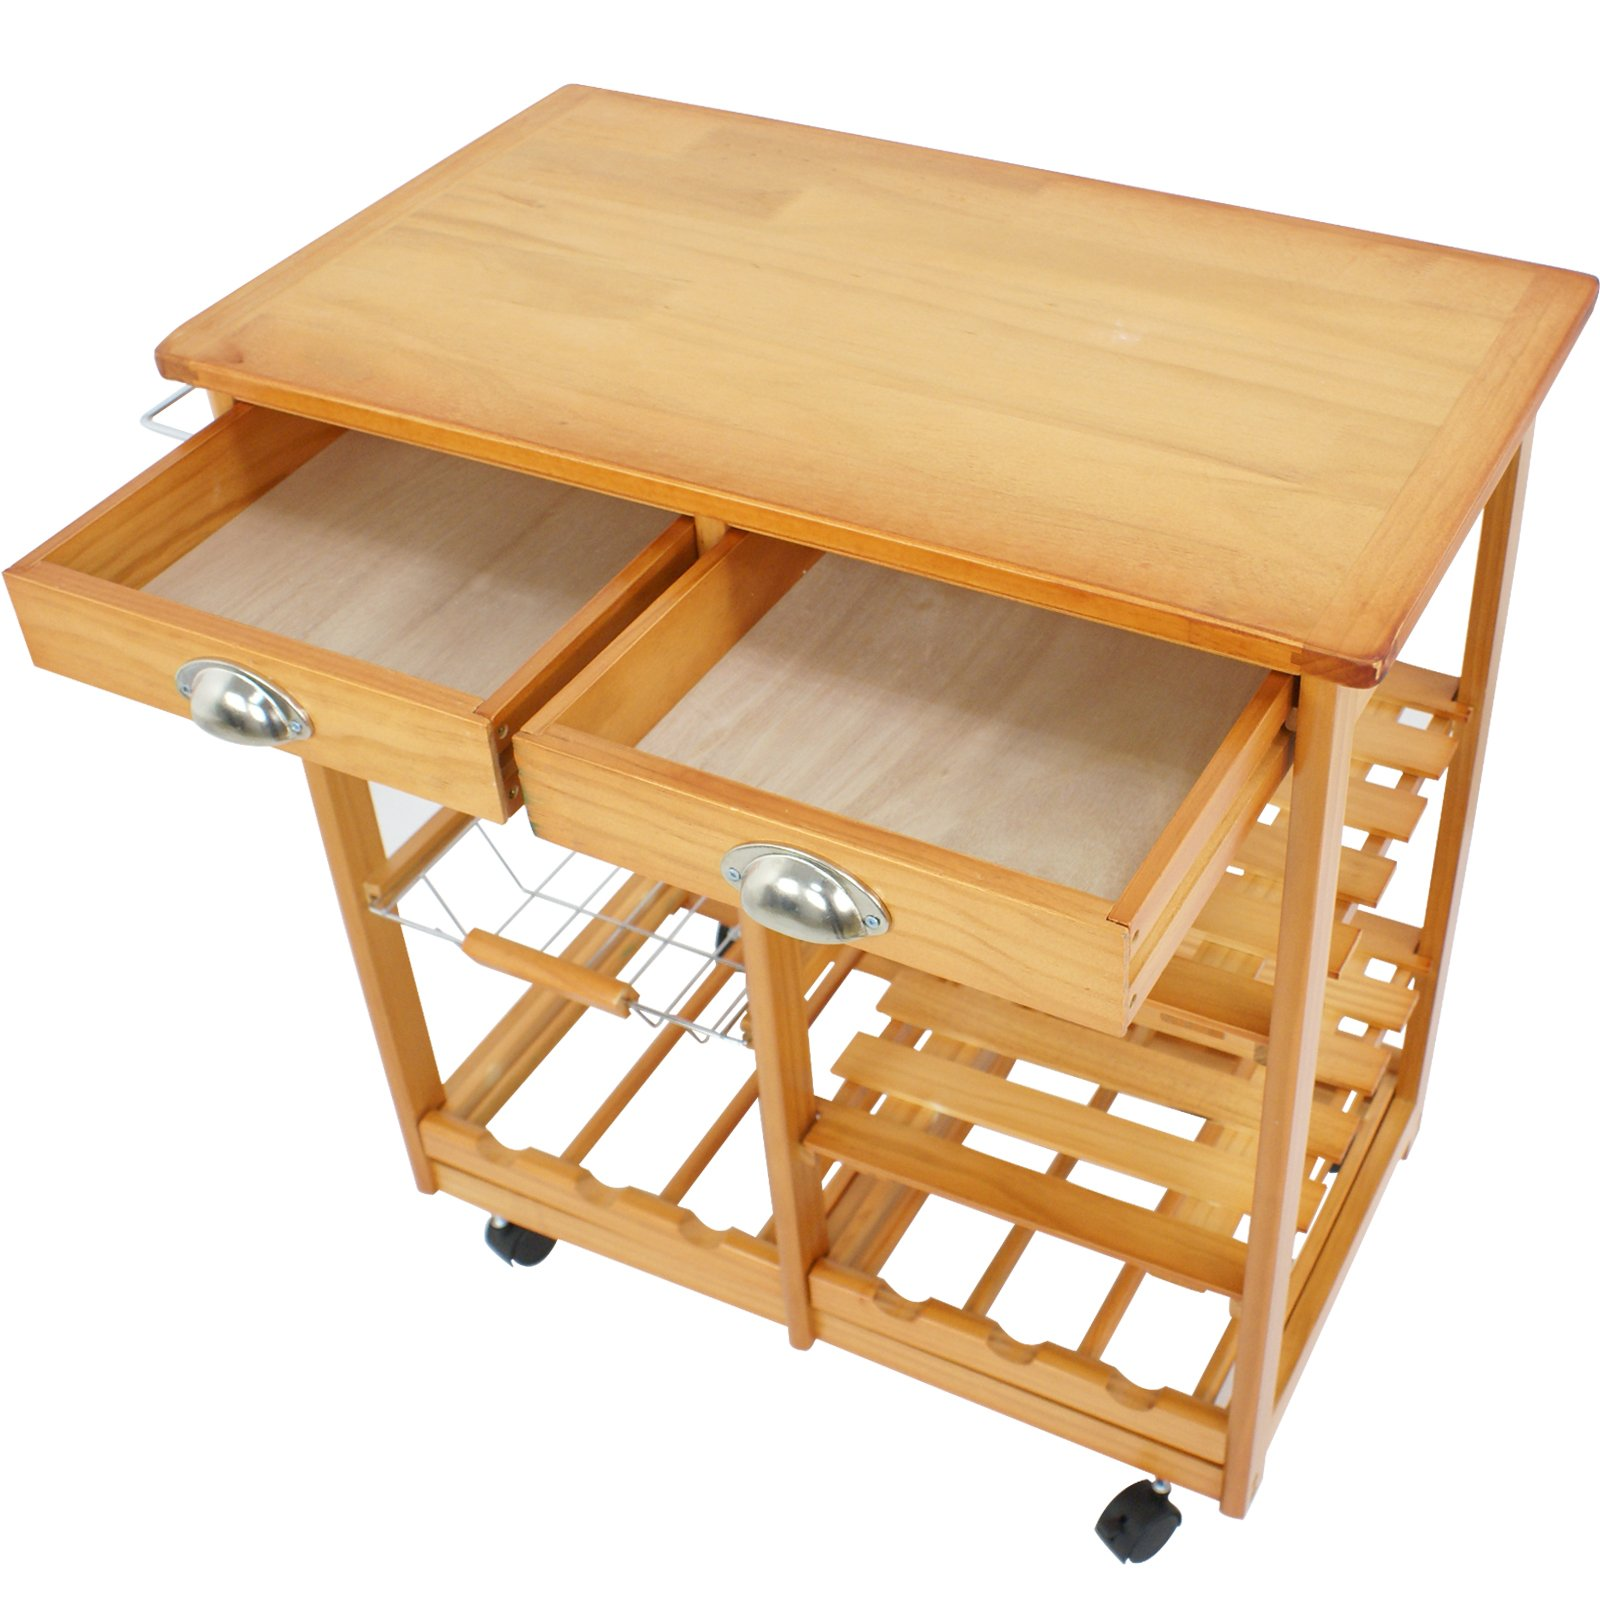 SUPER DEAL Multi-Purpose Wood Rolling Kitchen Island Trolley w/Drawer Shelves Basket by SUPER DEAL (Image #8)